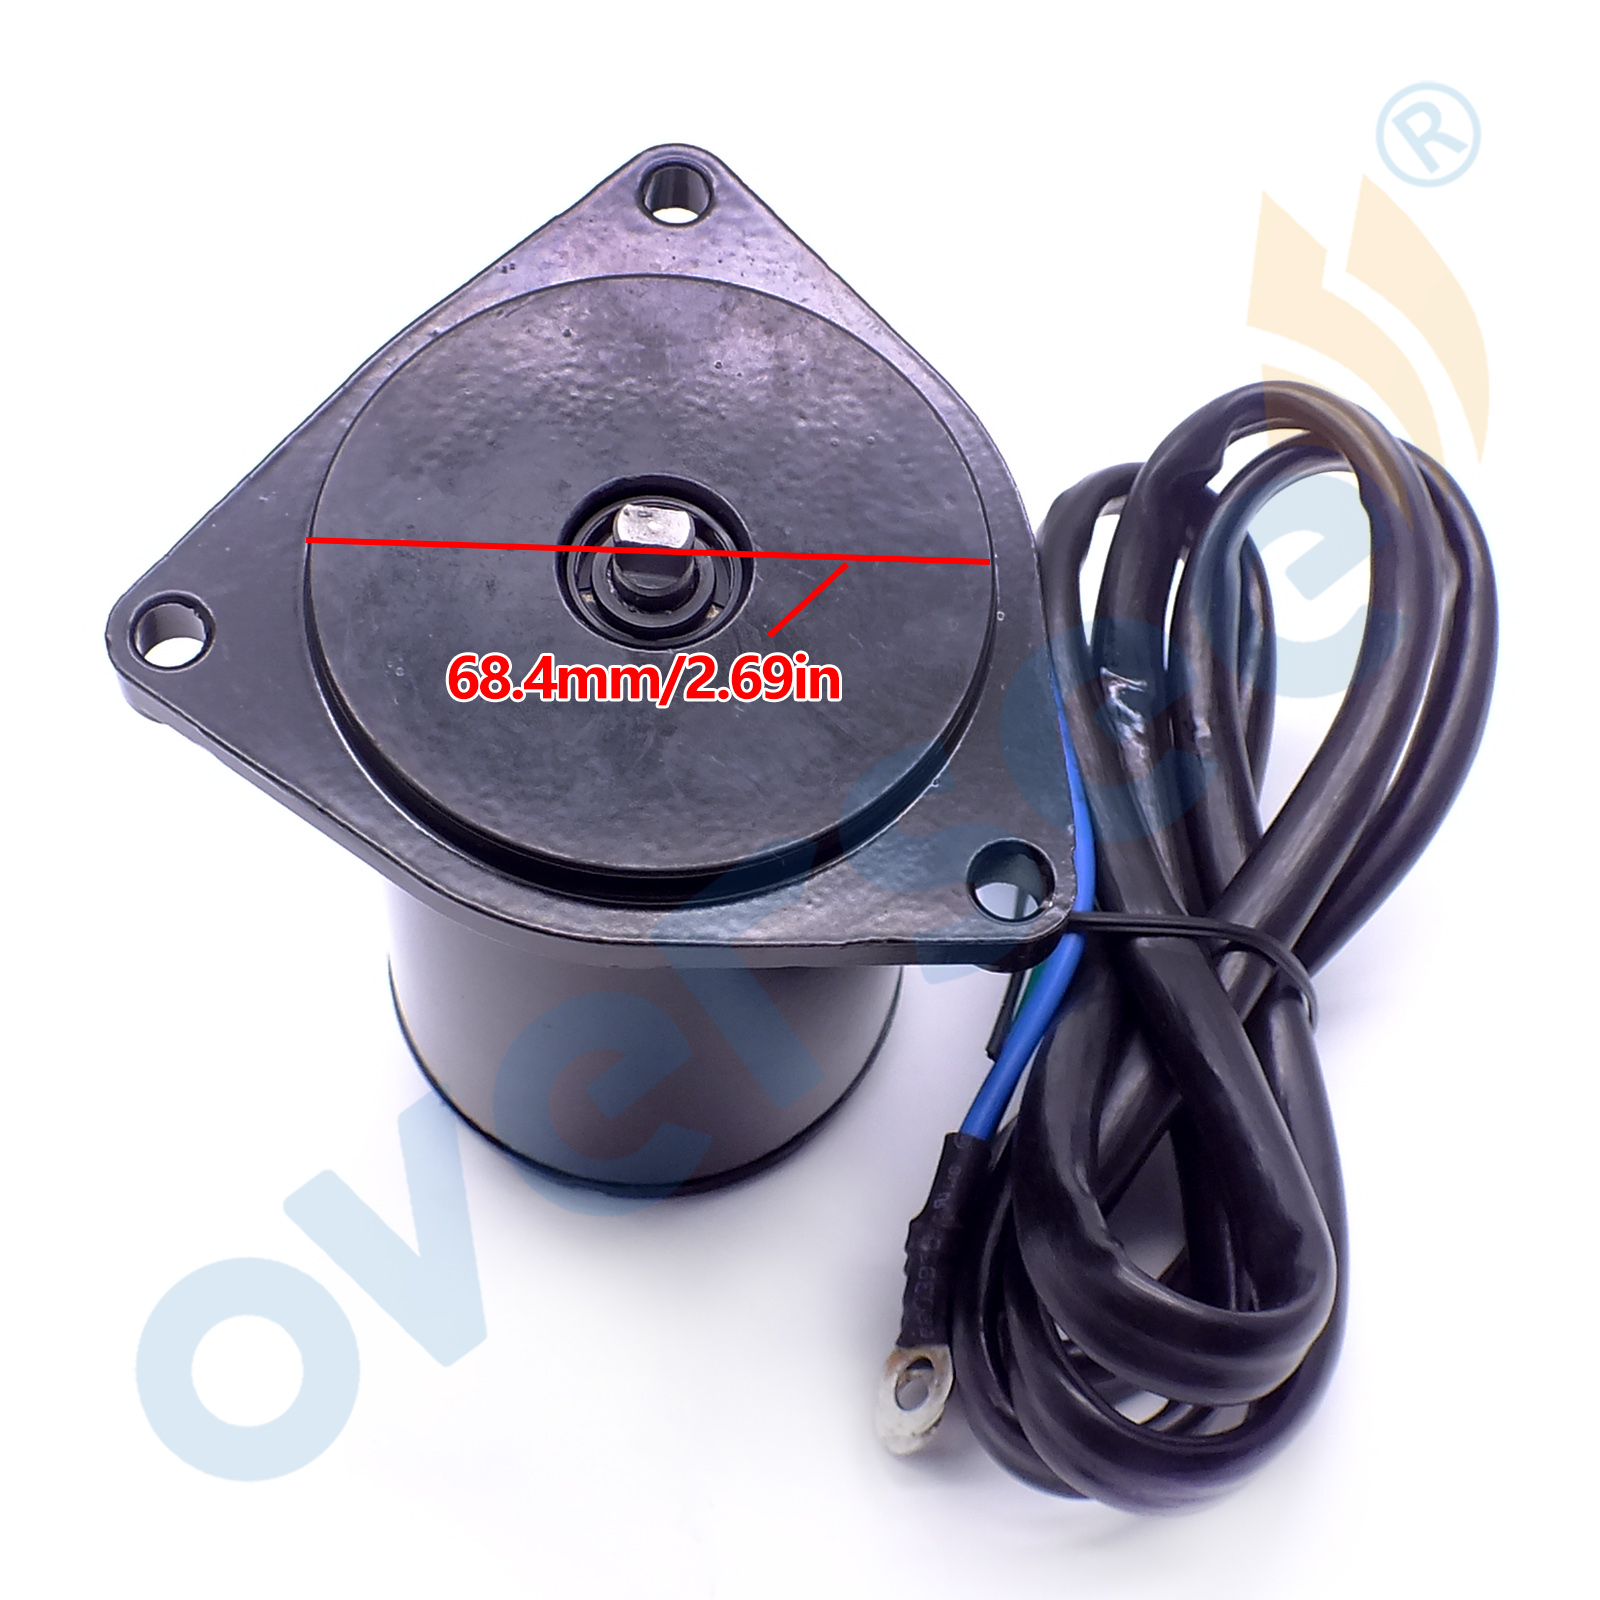 medium resolution of 6h1 43880 powertilt trim motor for yamaha outboard motor 50hp 55hp 60hp 70hp 85hp 90hp 6h1 43880 02 430 22028 in boat engine from automobiles motorcycles